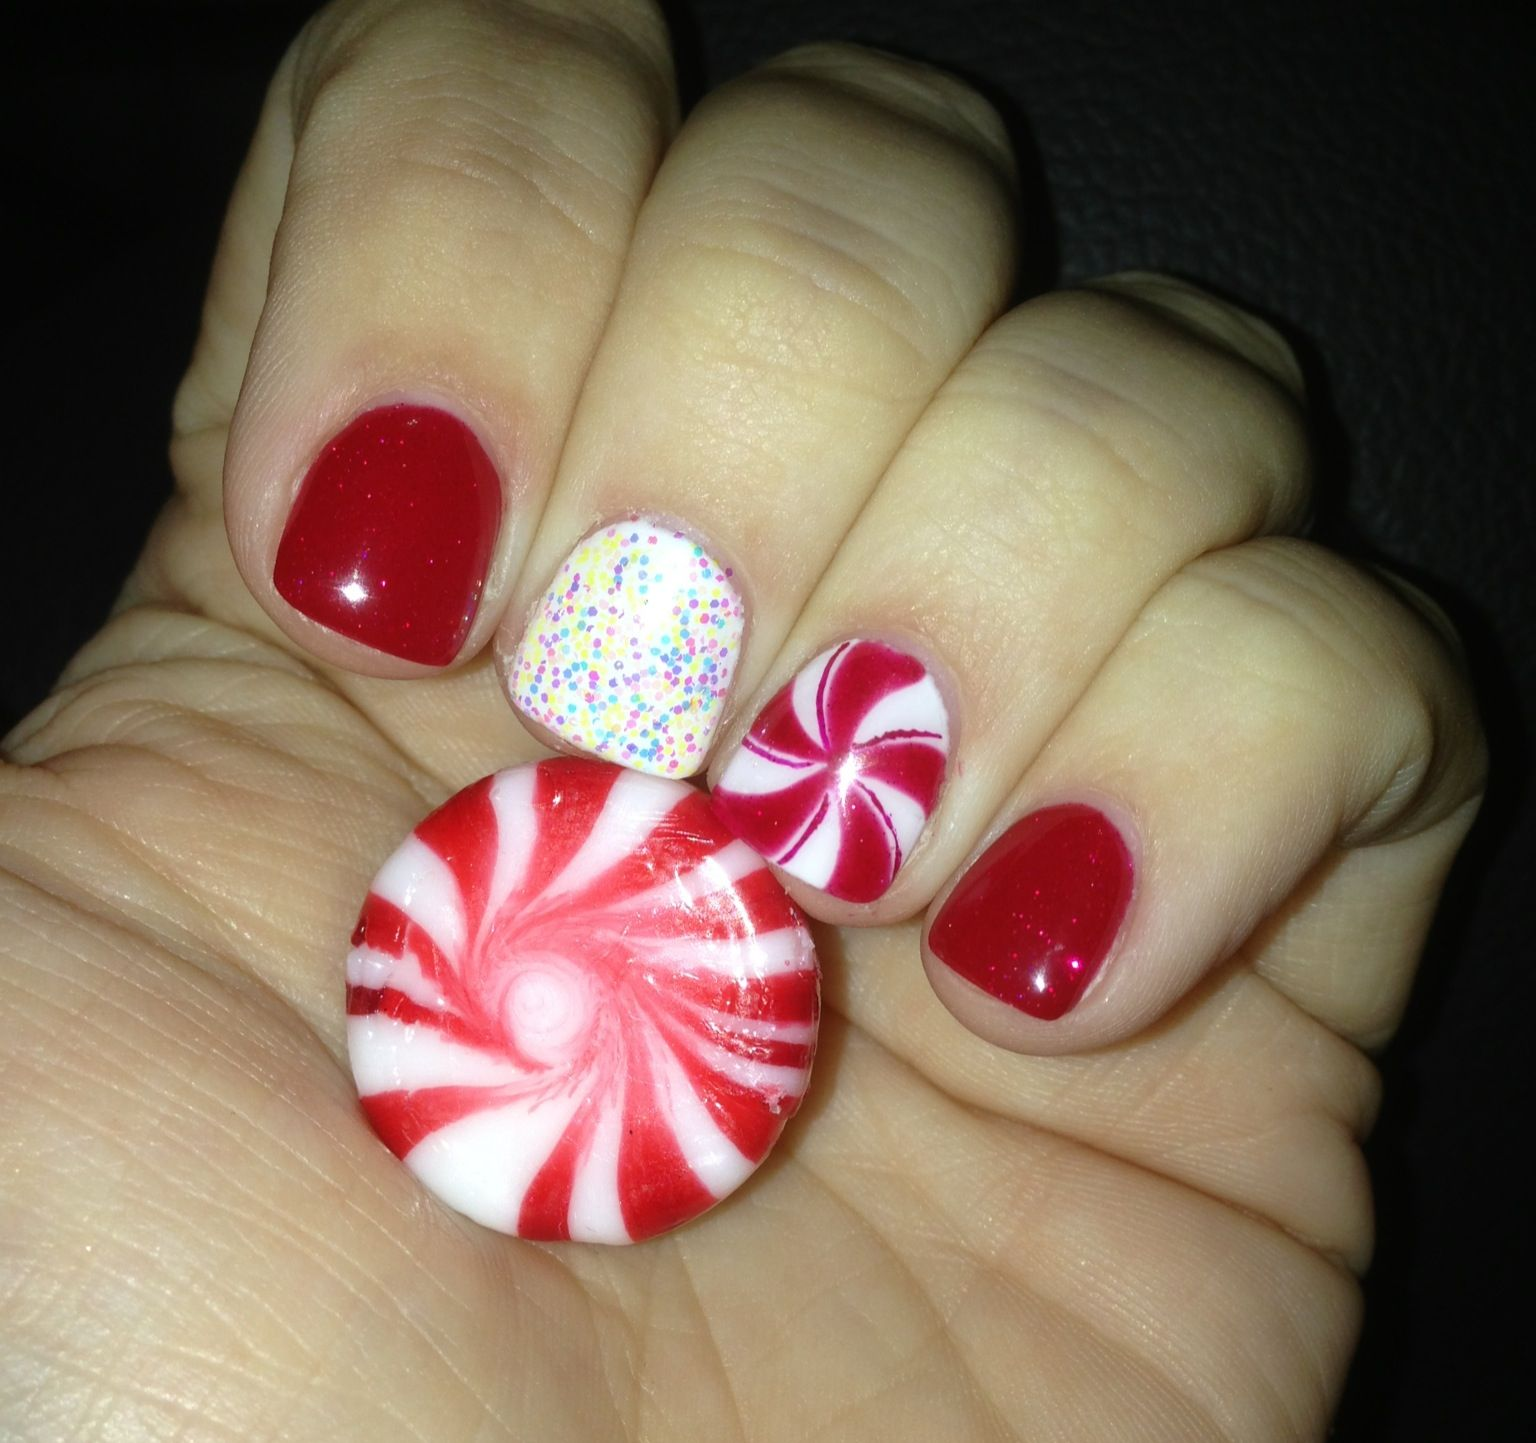 Christmas Gel Nails Manicure: Holiday Peppermint Glitter Gel Manicure